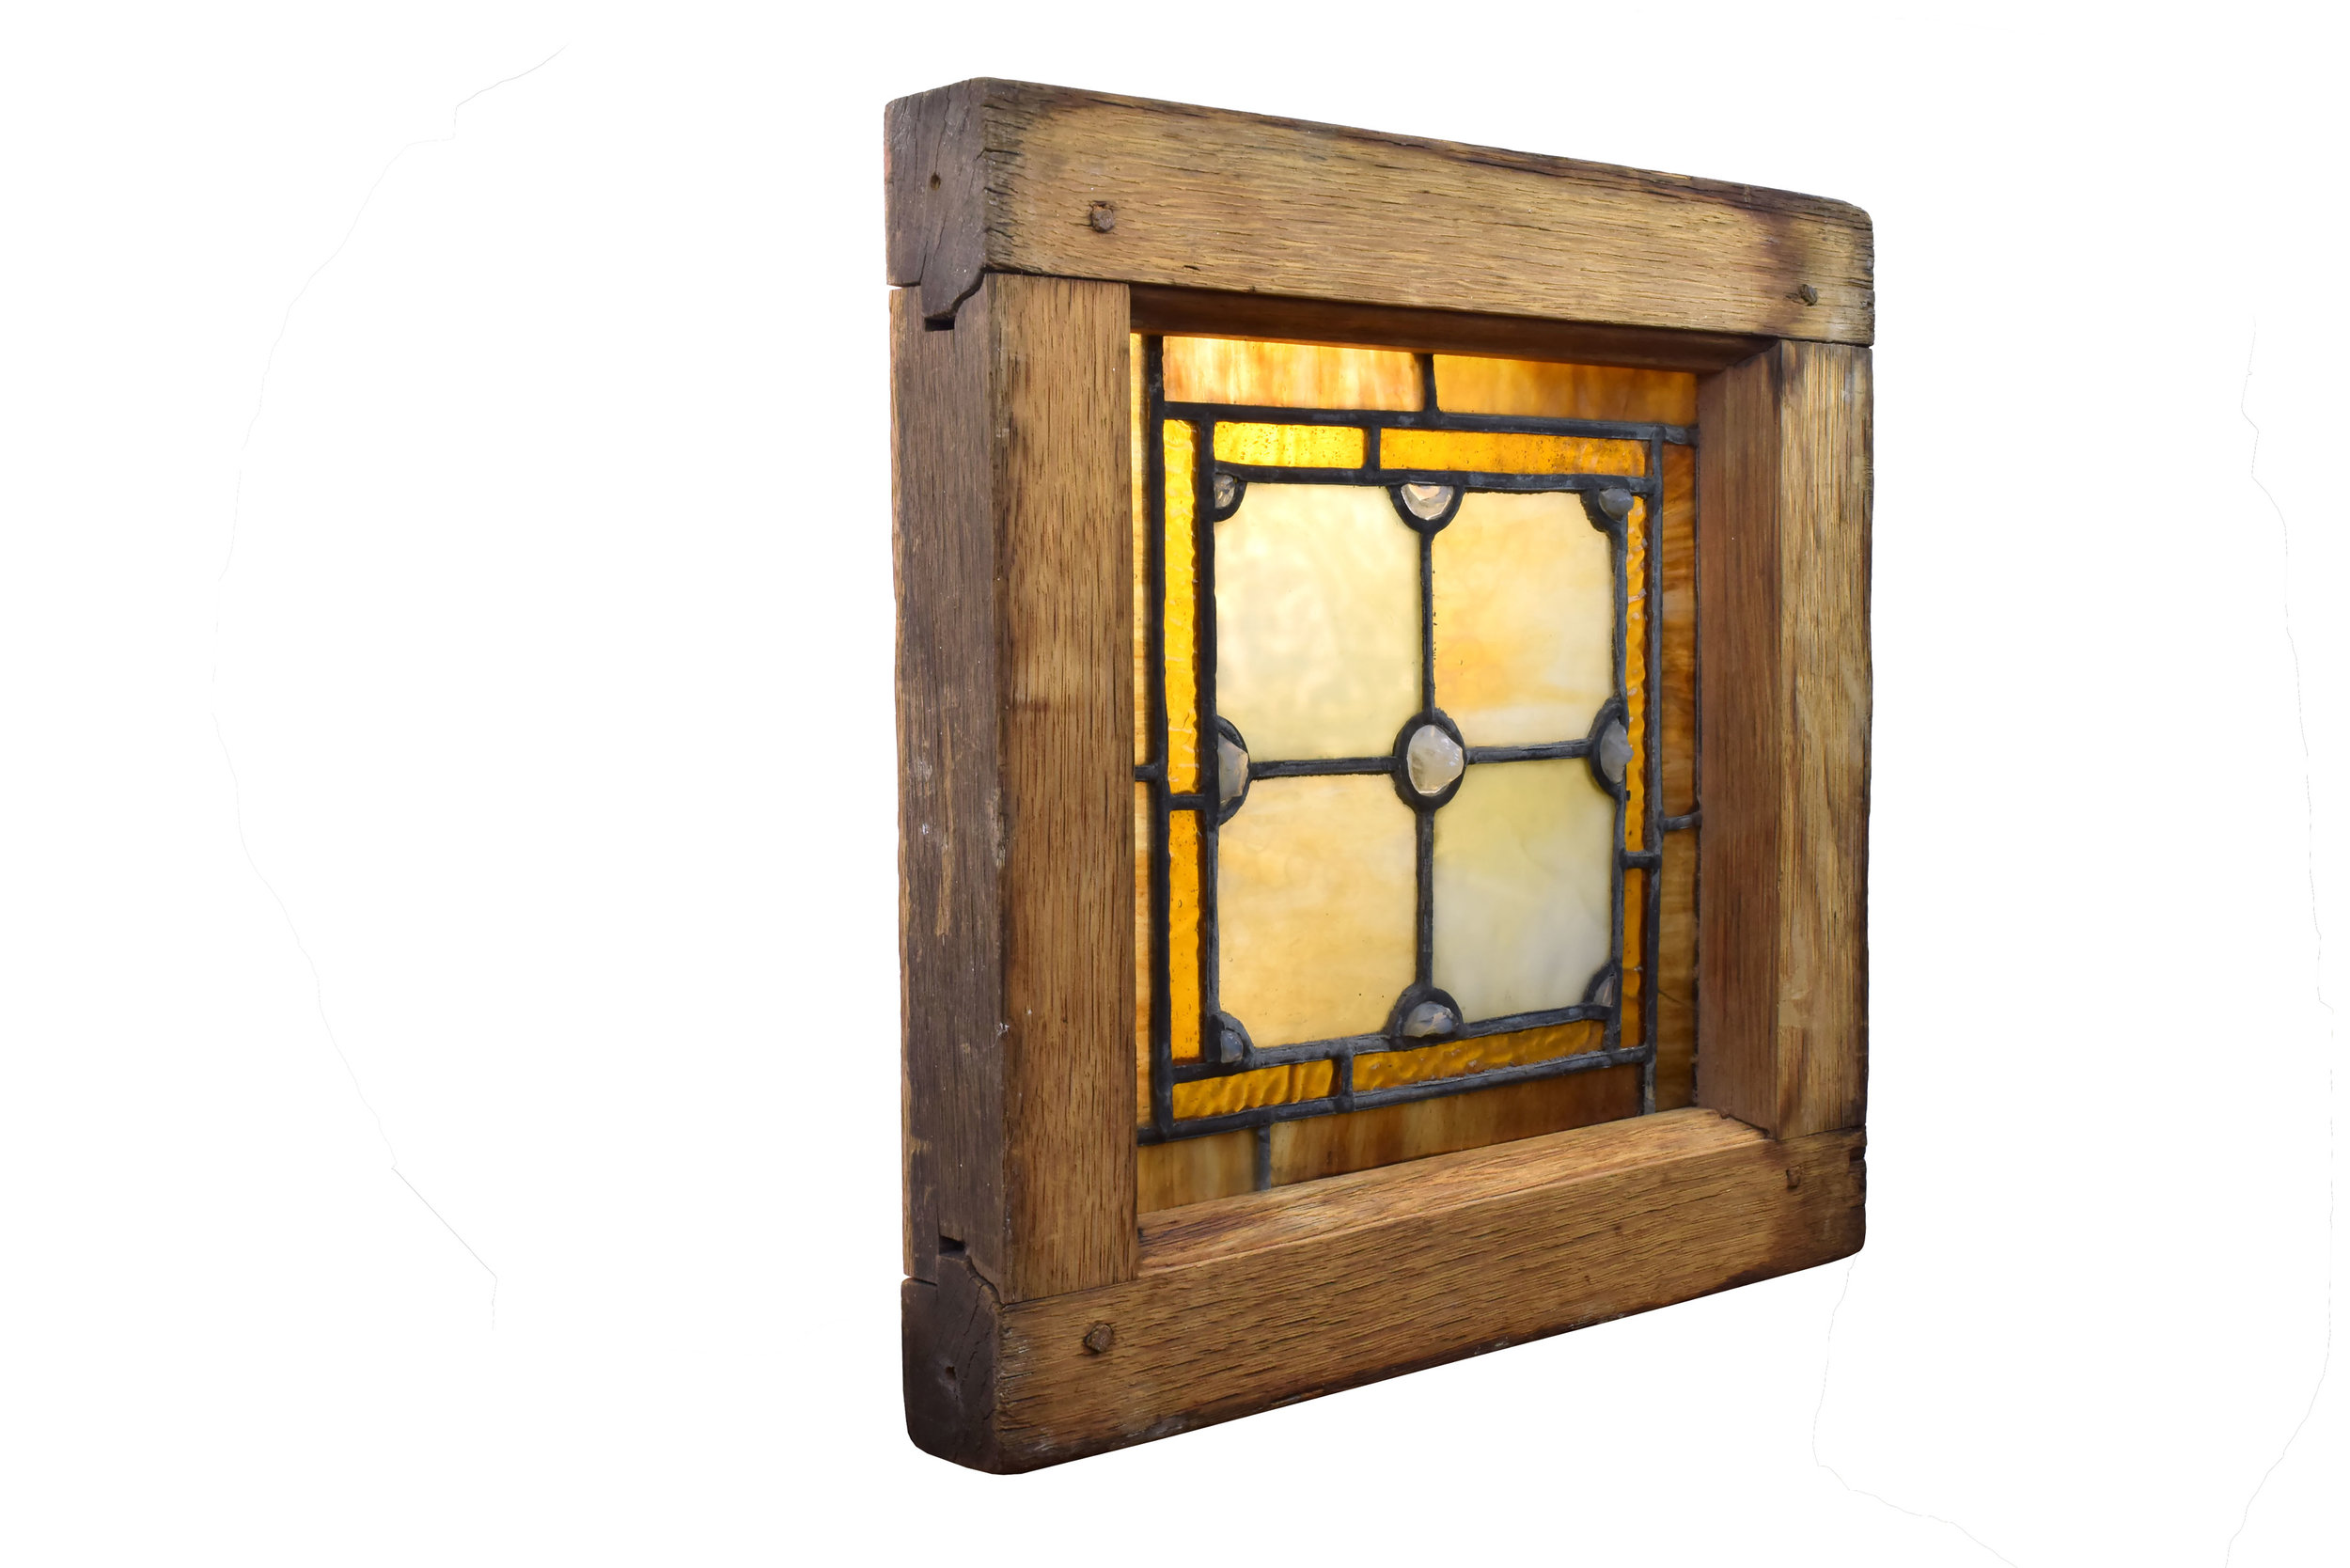 47198-small-square-victorian-window-angle-view.jpg